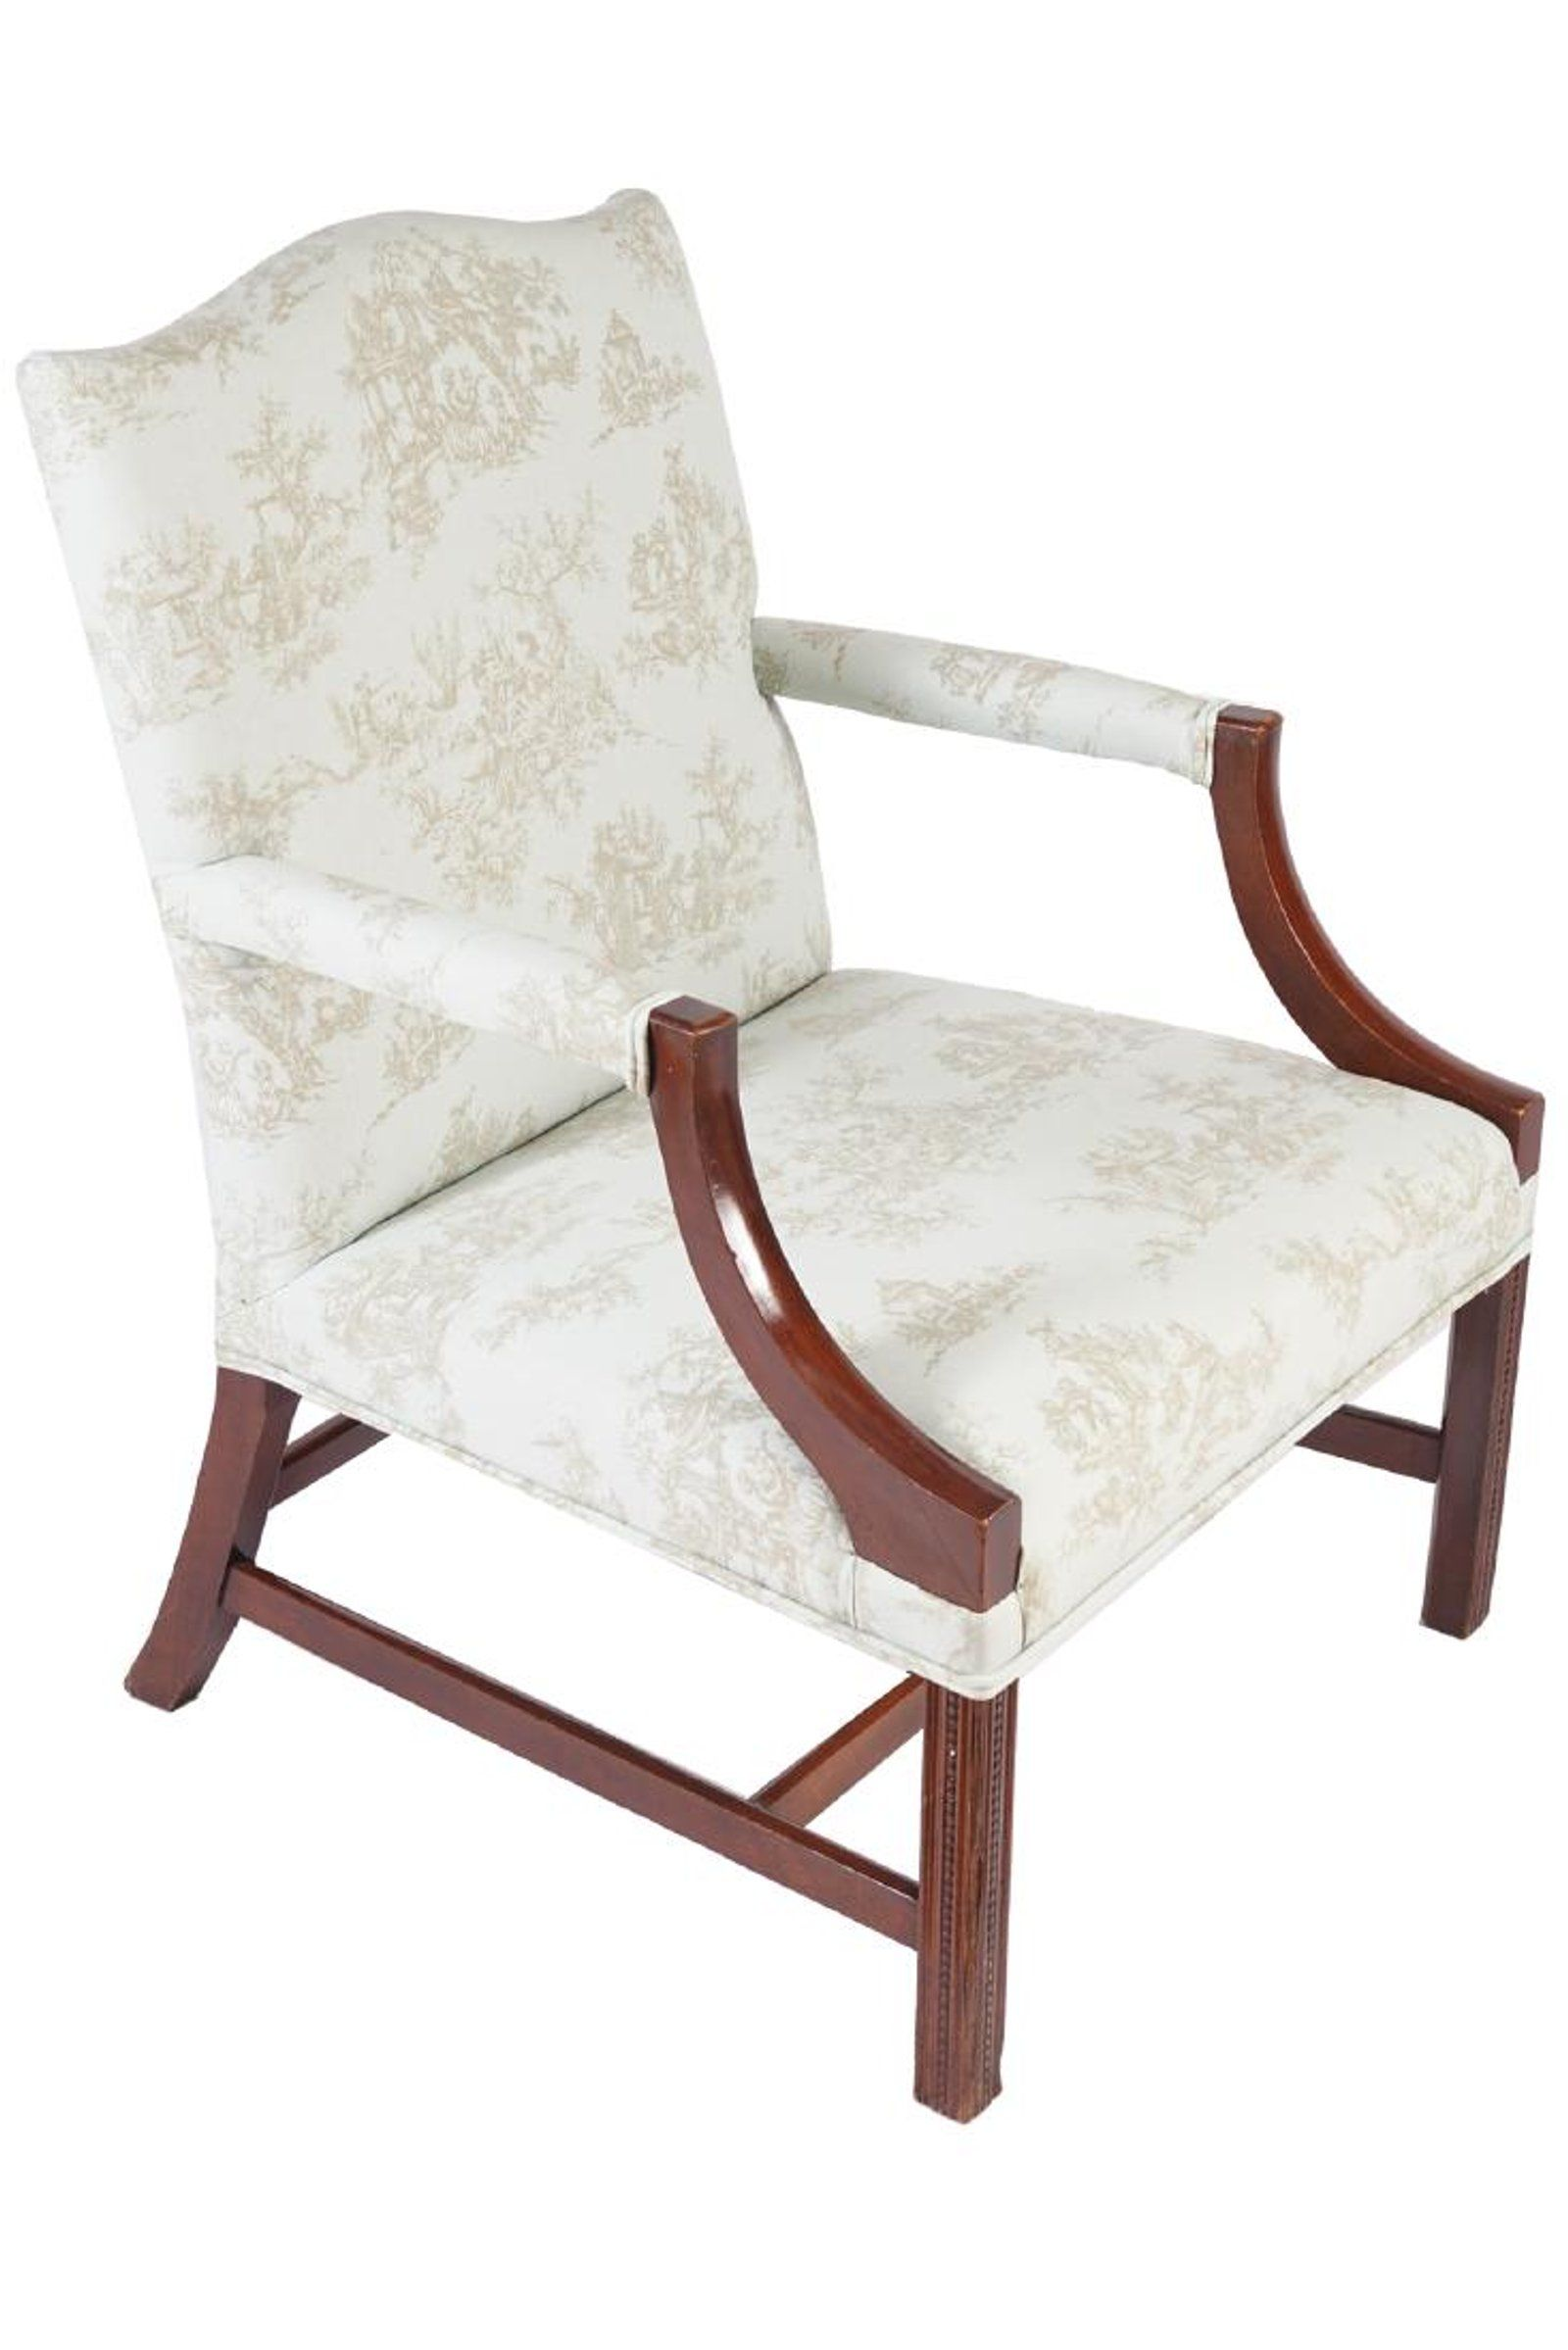 Pair of edwardian period mahogany and upholstered #edwardianperiod